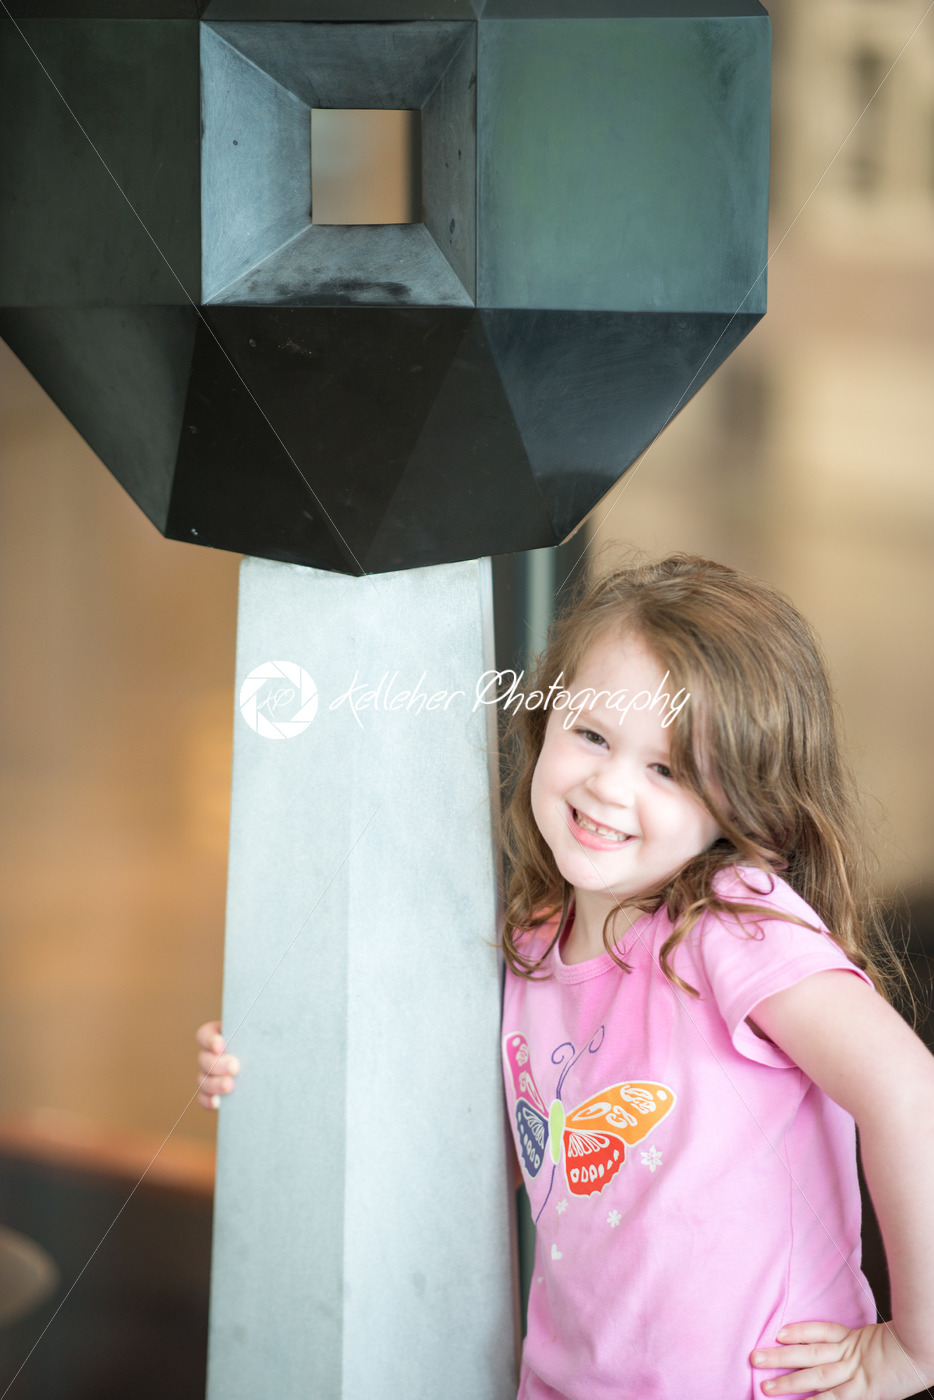 Pretty little girl with a happy sweet smile - Kelleher Photography Store